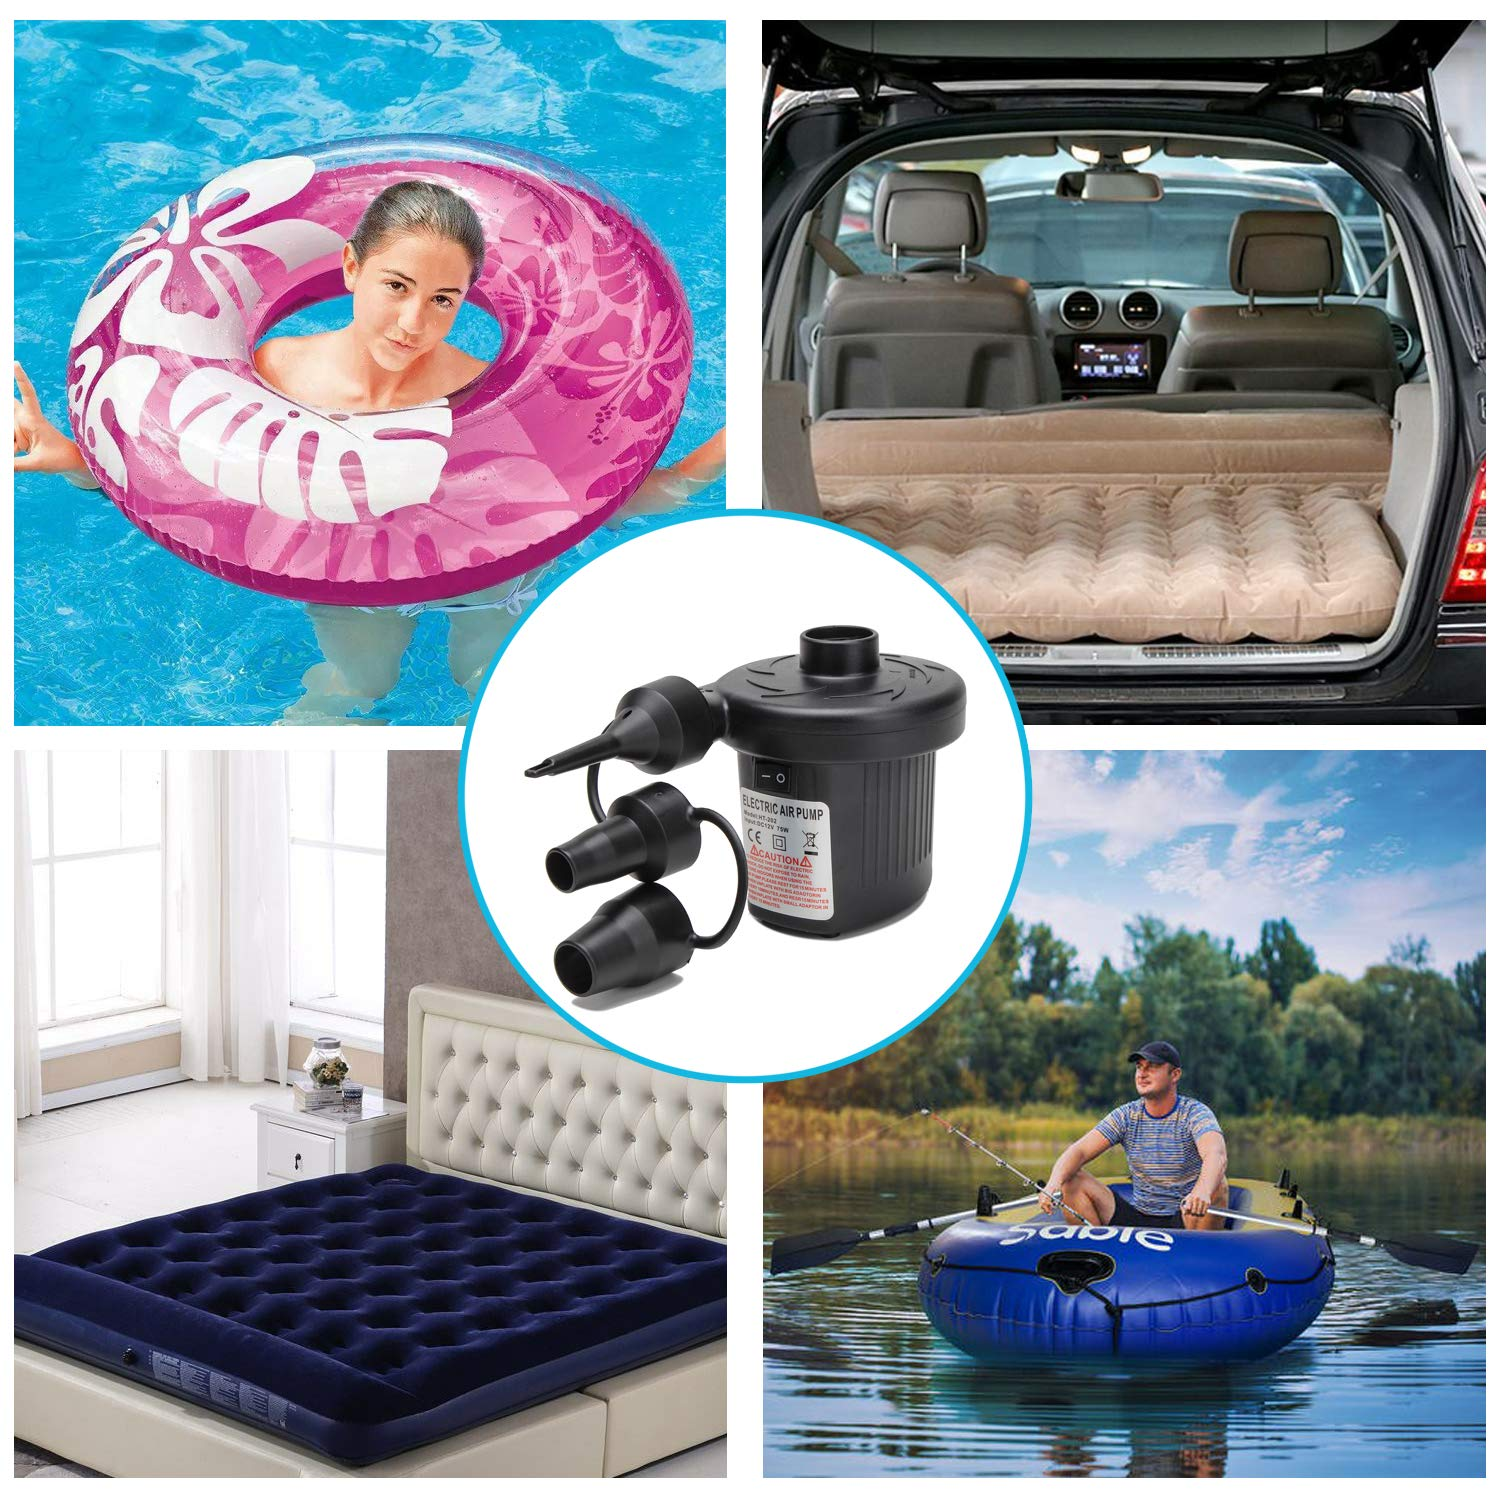 Air Boats Air Beds 110V AC//12V DC Deflates and Inflates for Swimming Ring Inflatable Furniture Outdoor Camping Portable Quick-Fill Air Pump with 3 Nozzles Moonet Electric Air Pump